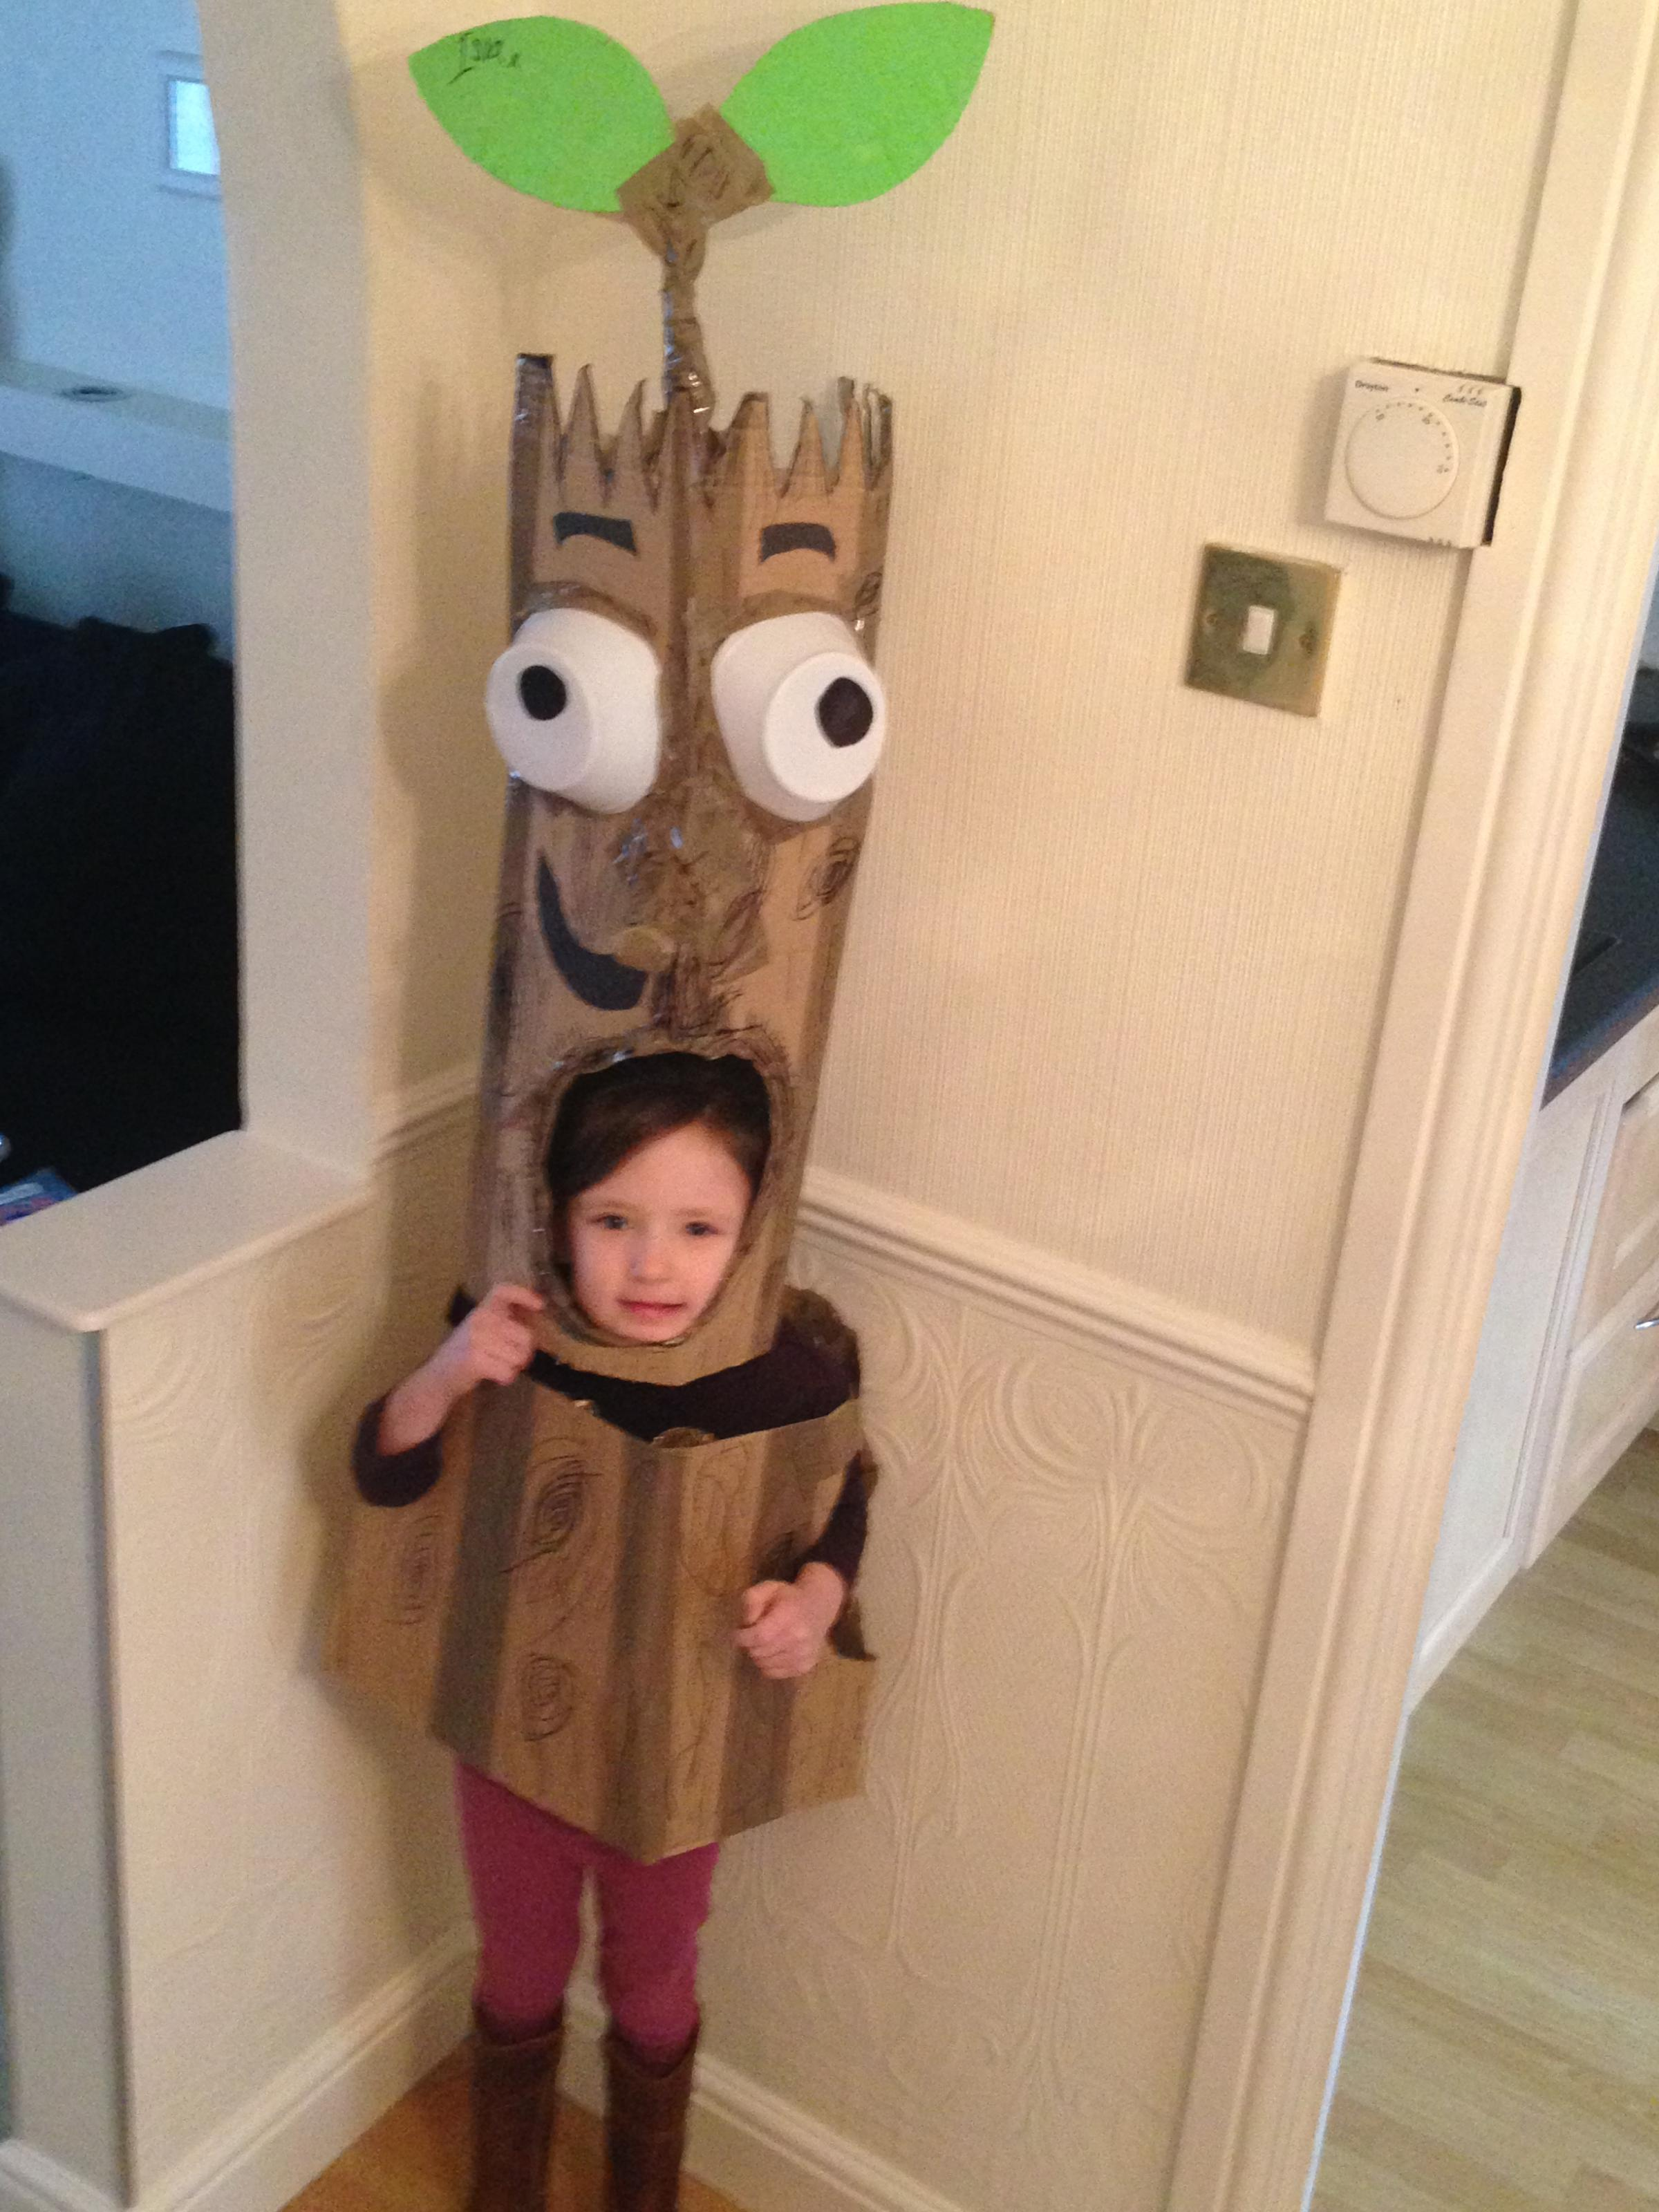 World Book Day 2017 Six costume ideas to inspire you for next Thursday | Bournemouth Echo  sc 1 st  Bournemouth Echo & World Book Day 2017: Six costume ideas to inspire you for next ...